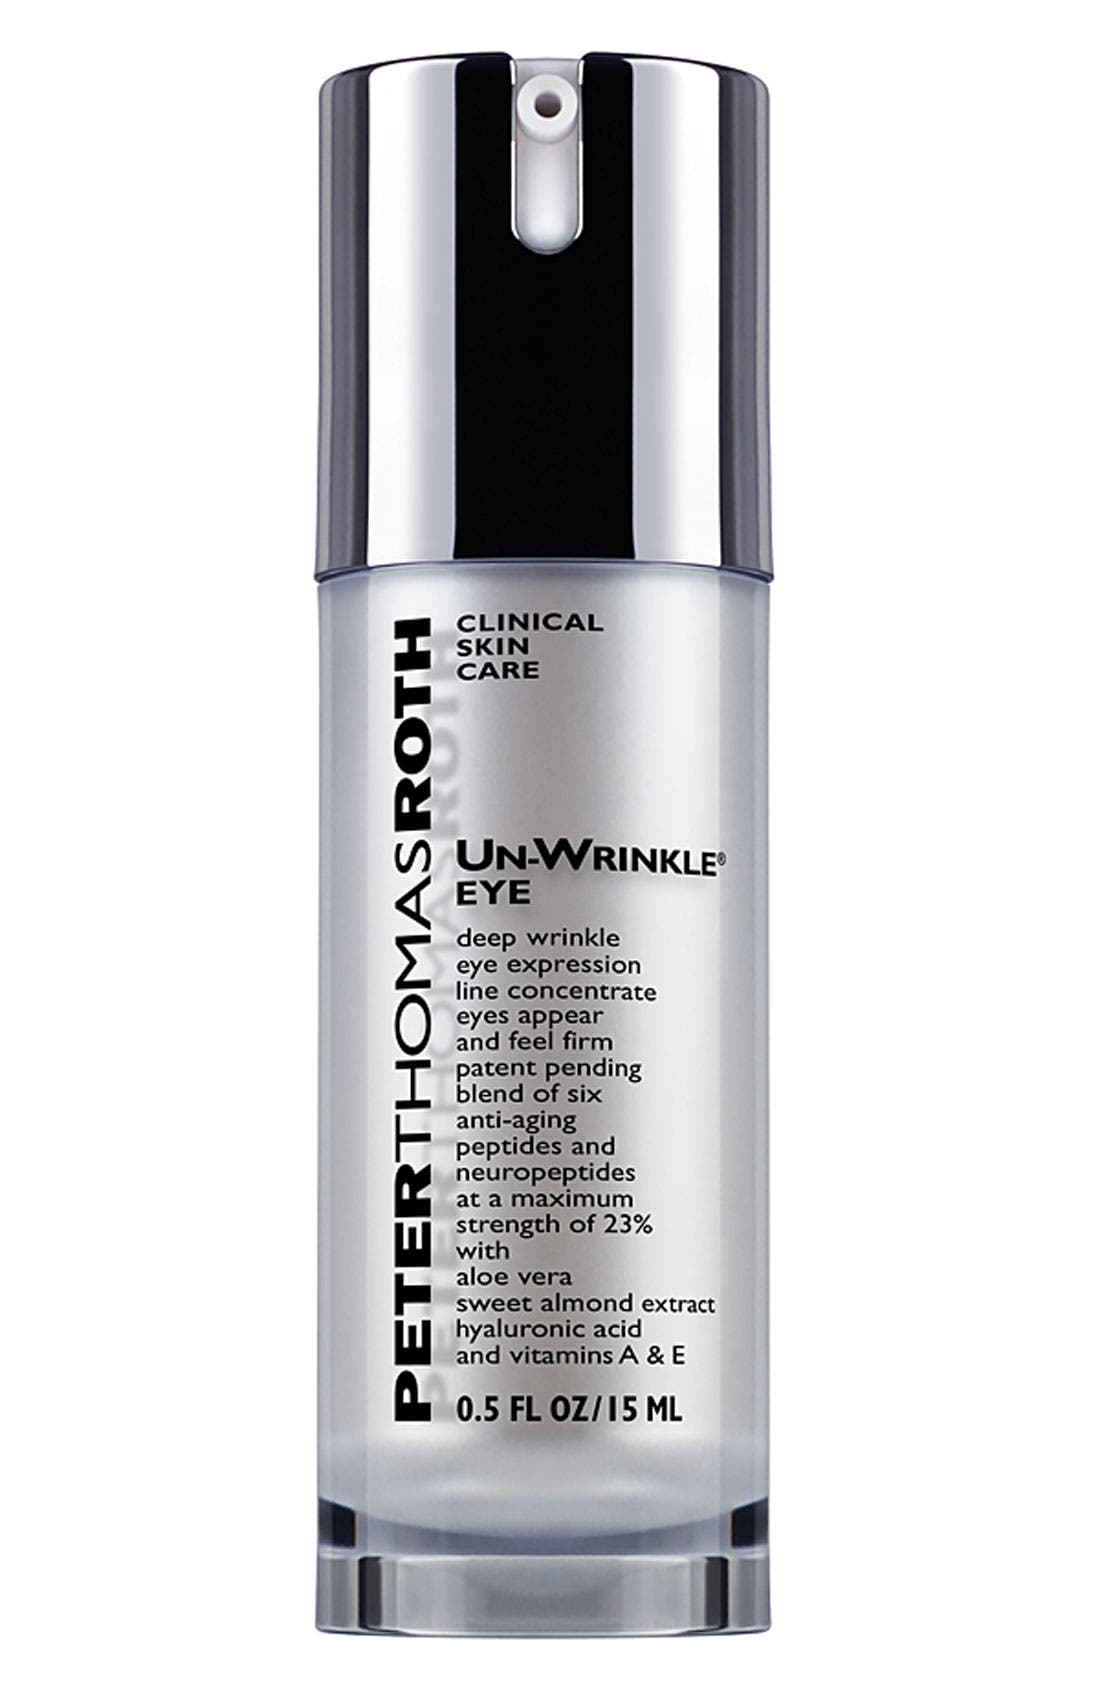 Peter Thomas Roth Un-Wrinkle® Eye